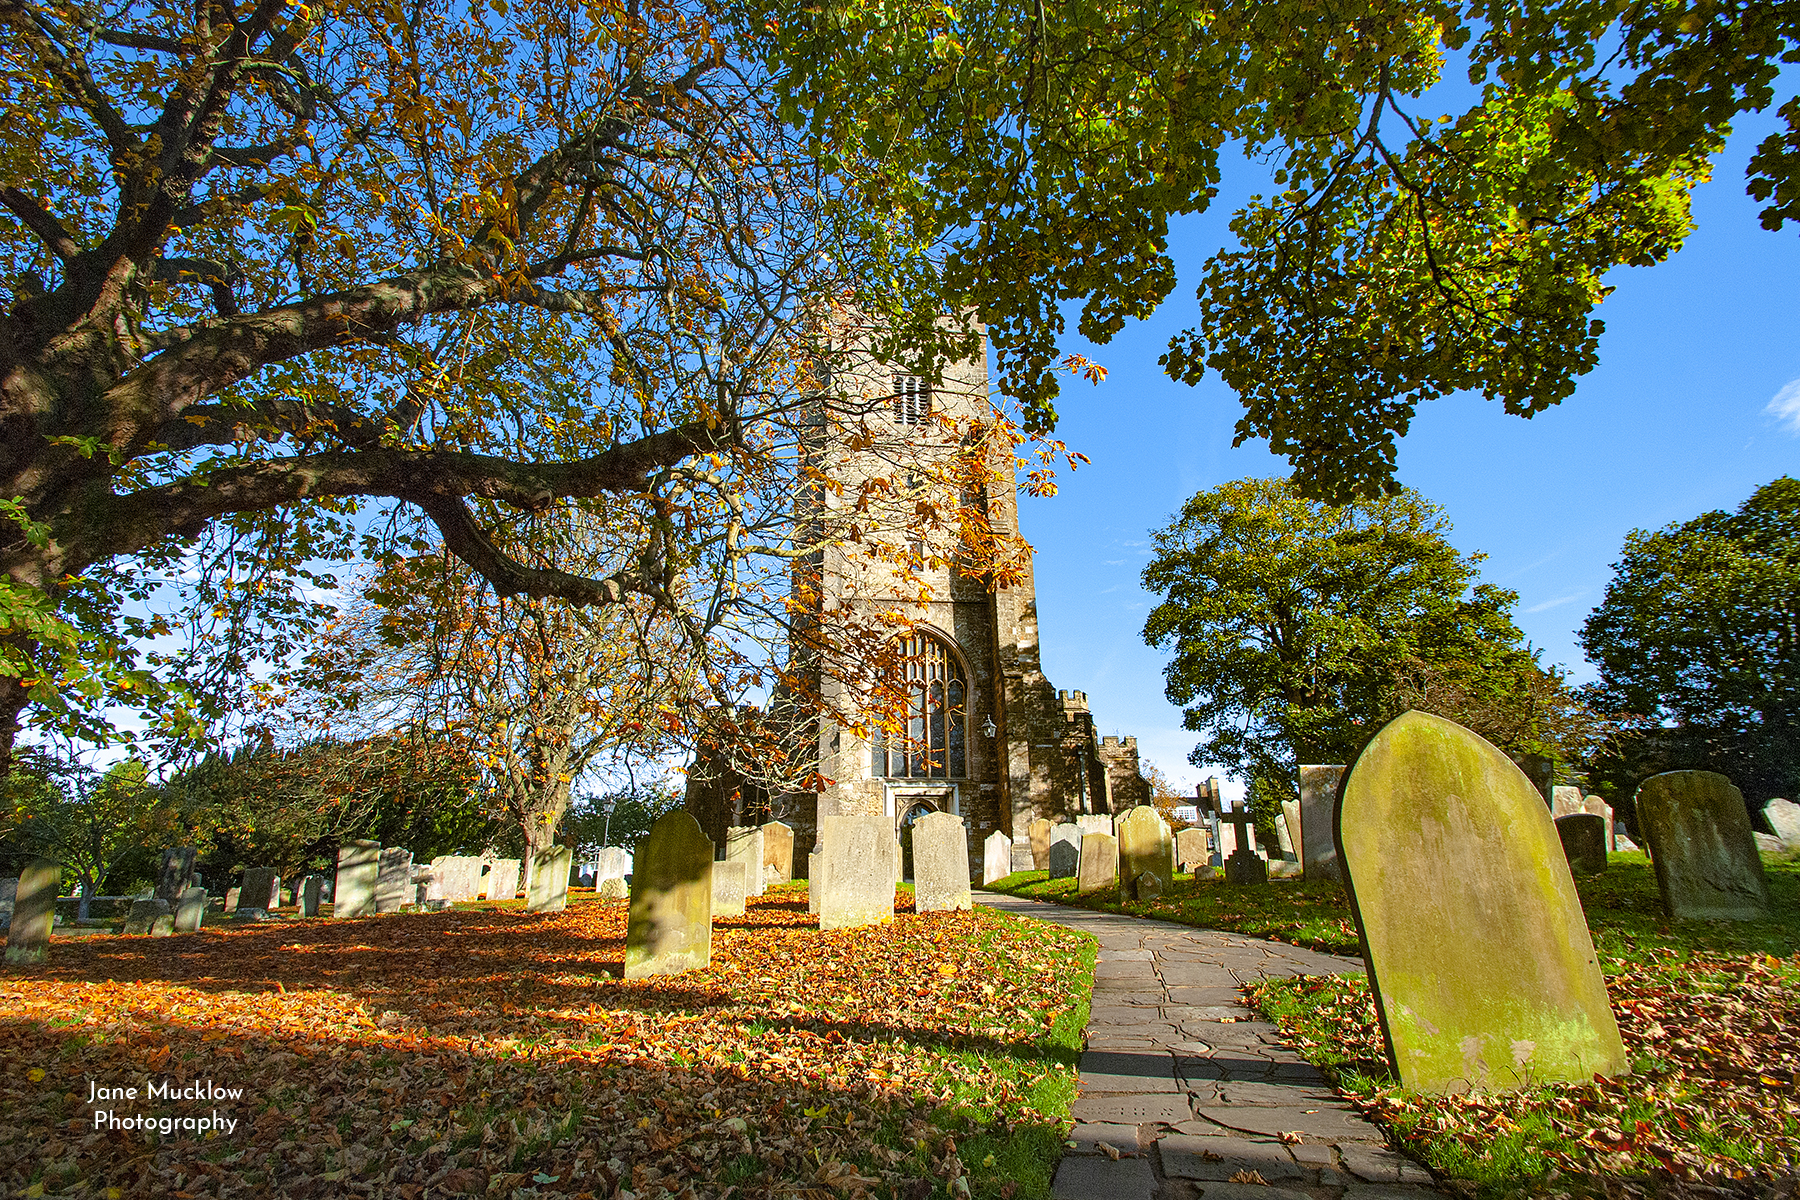 Photograph by Jane Mucklow of St. Nick's church in Sevenoaks, Kent, with Autumn trees.